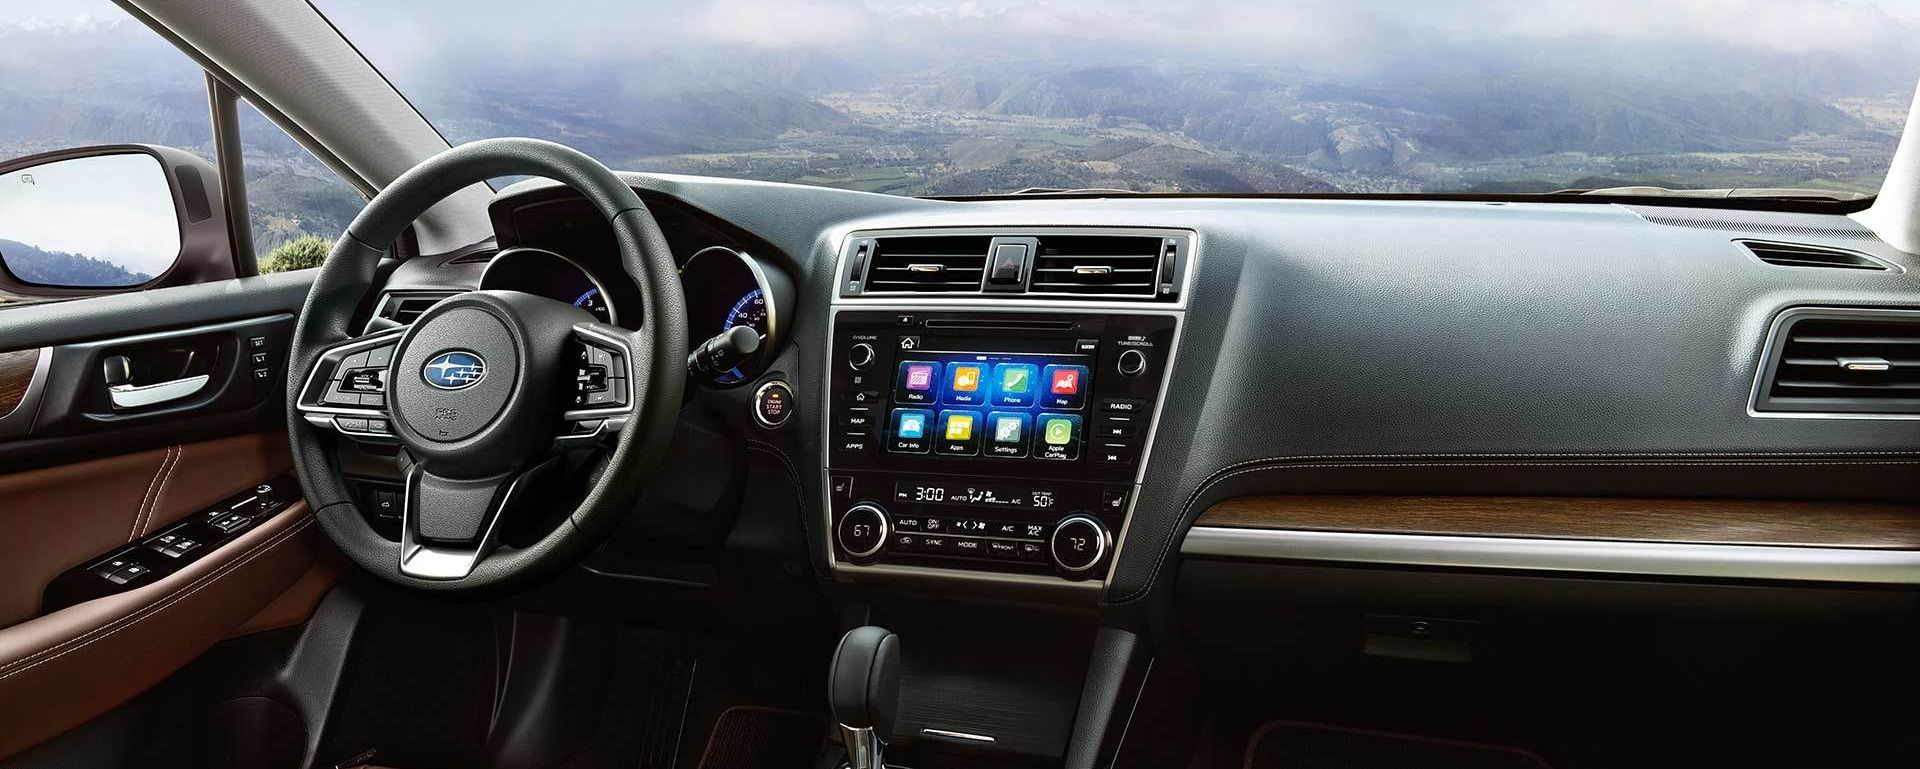 Interior of the 2018 Subaru Outback